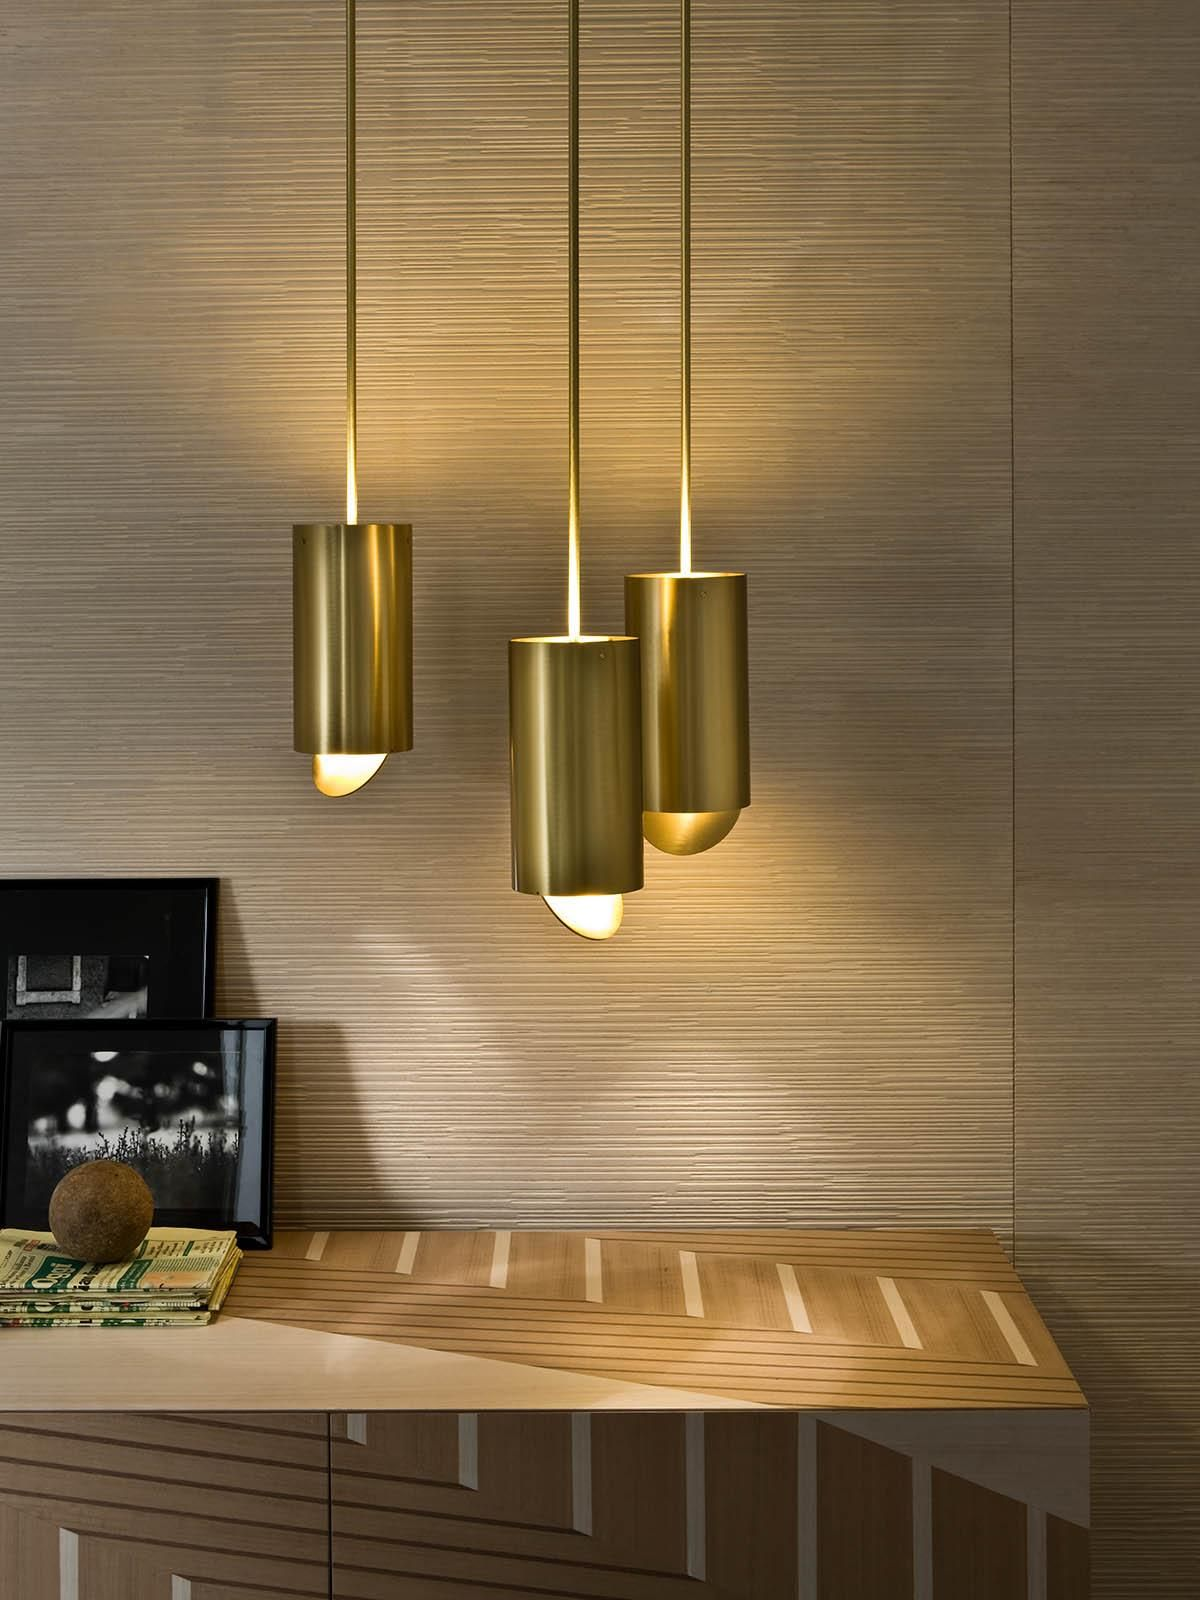 Designer Tischleuchten Lighting Tubo Sospensione Mf 40 Laurameroni Resource